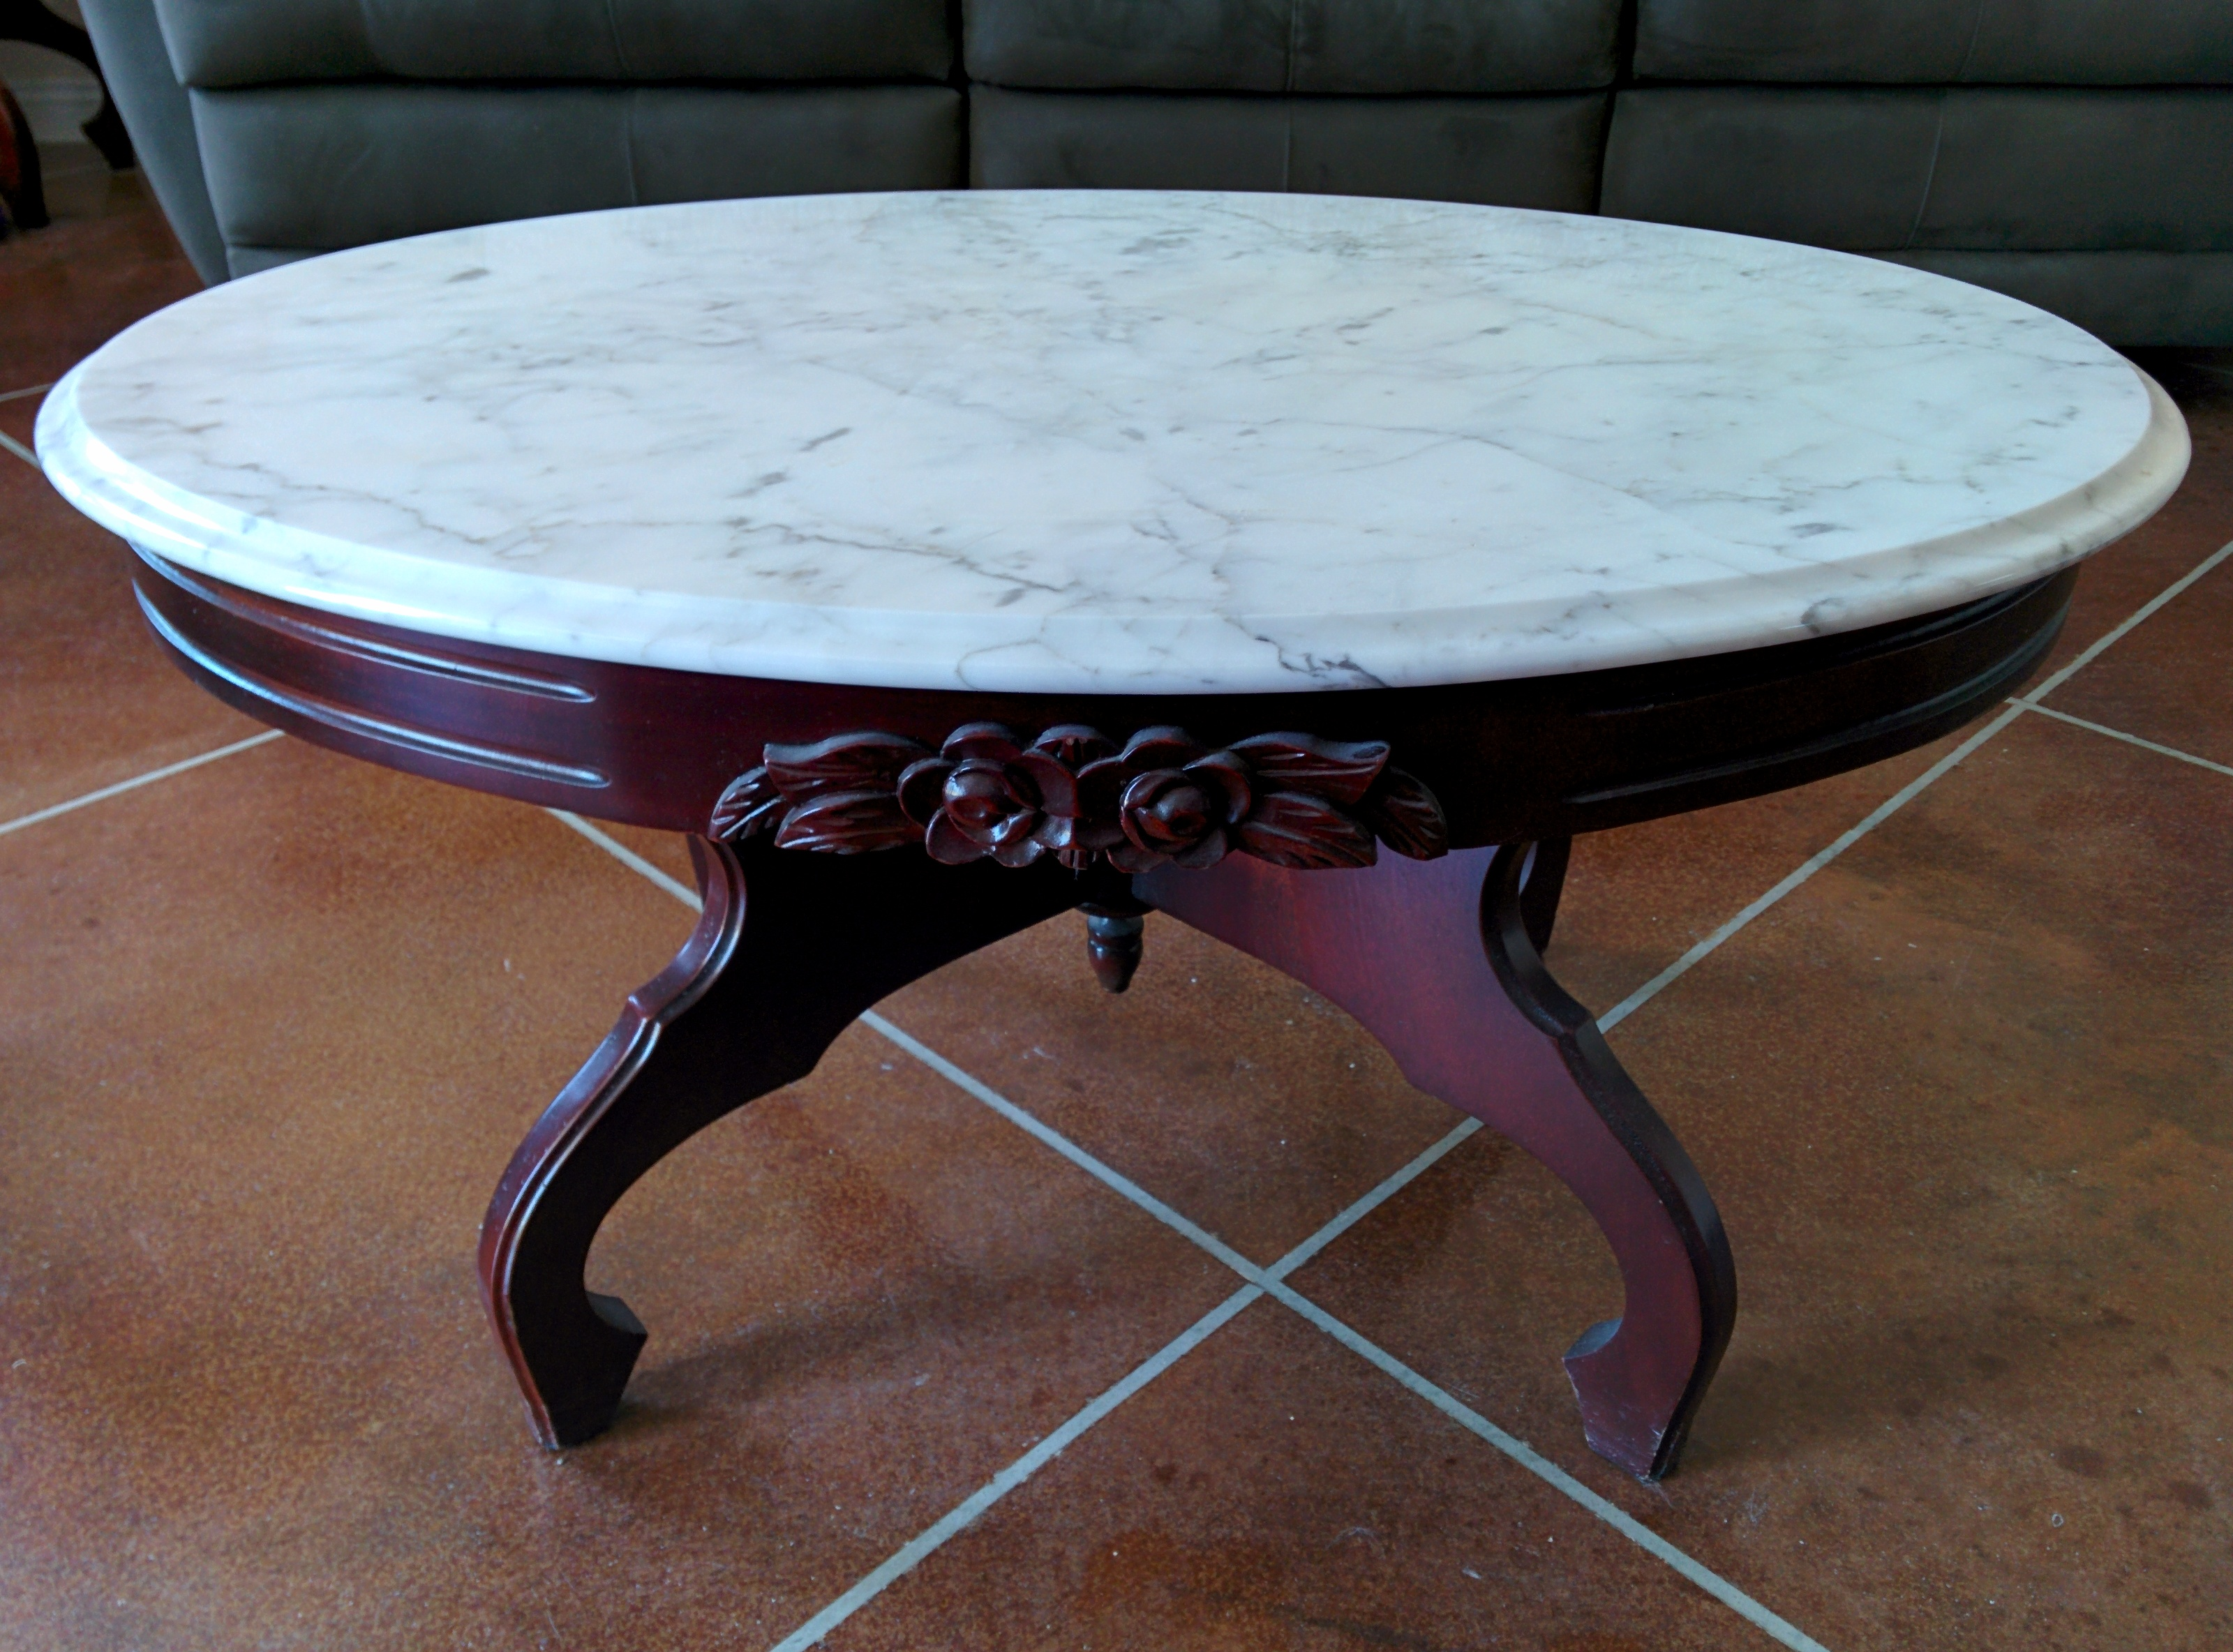 antique marble coffee table Antique Italian Marble Coffee Table. antique appraisal | InstAppraisal antique marble coffee table